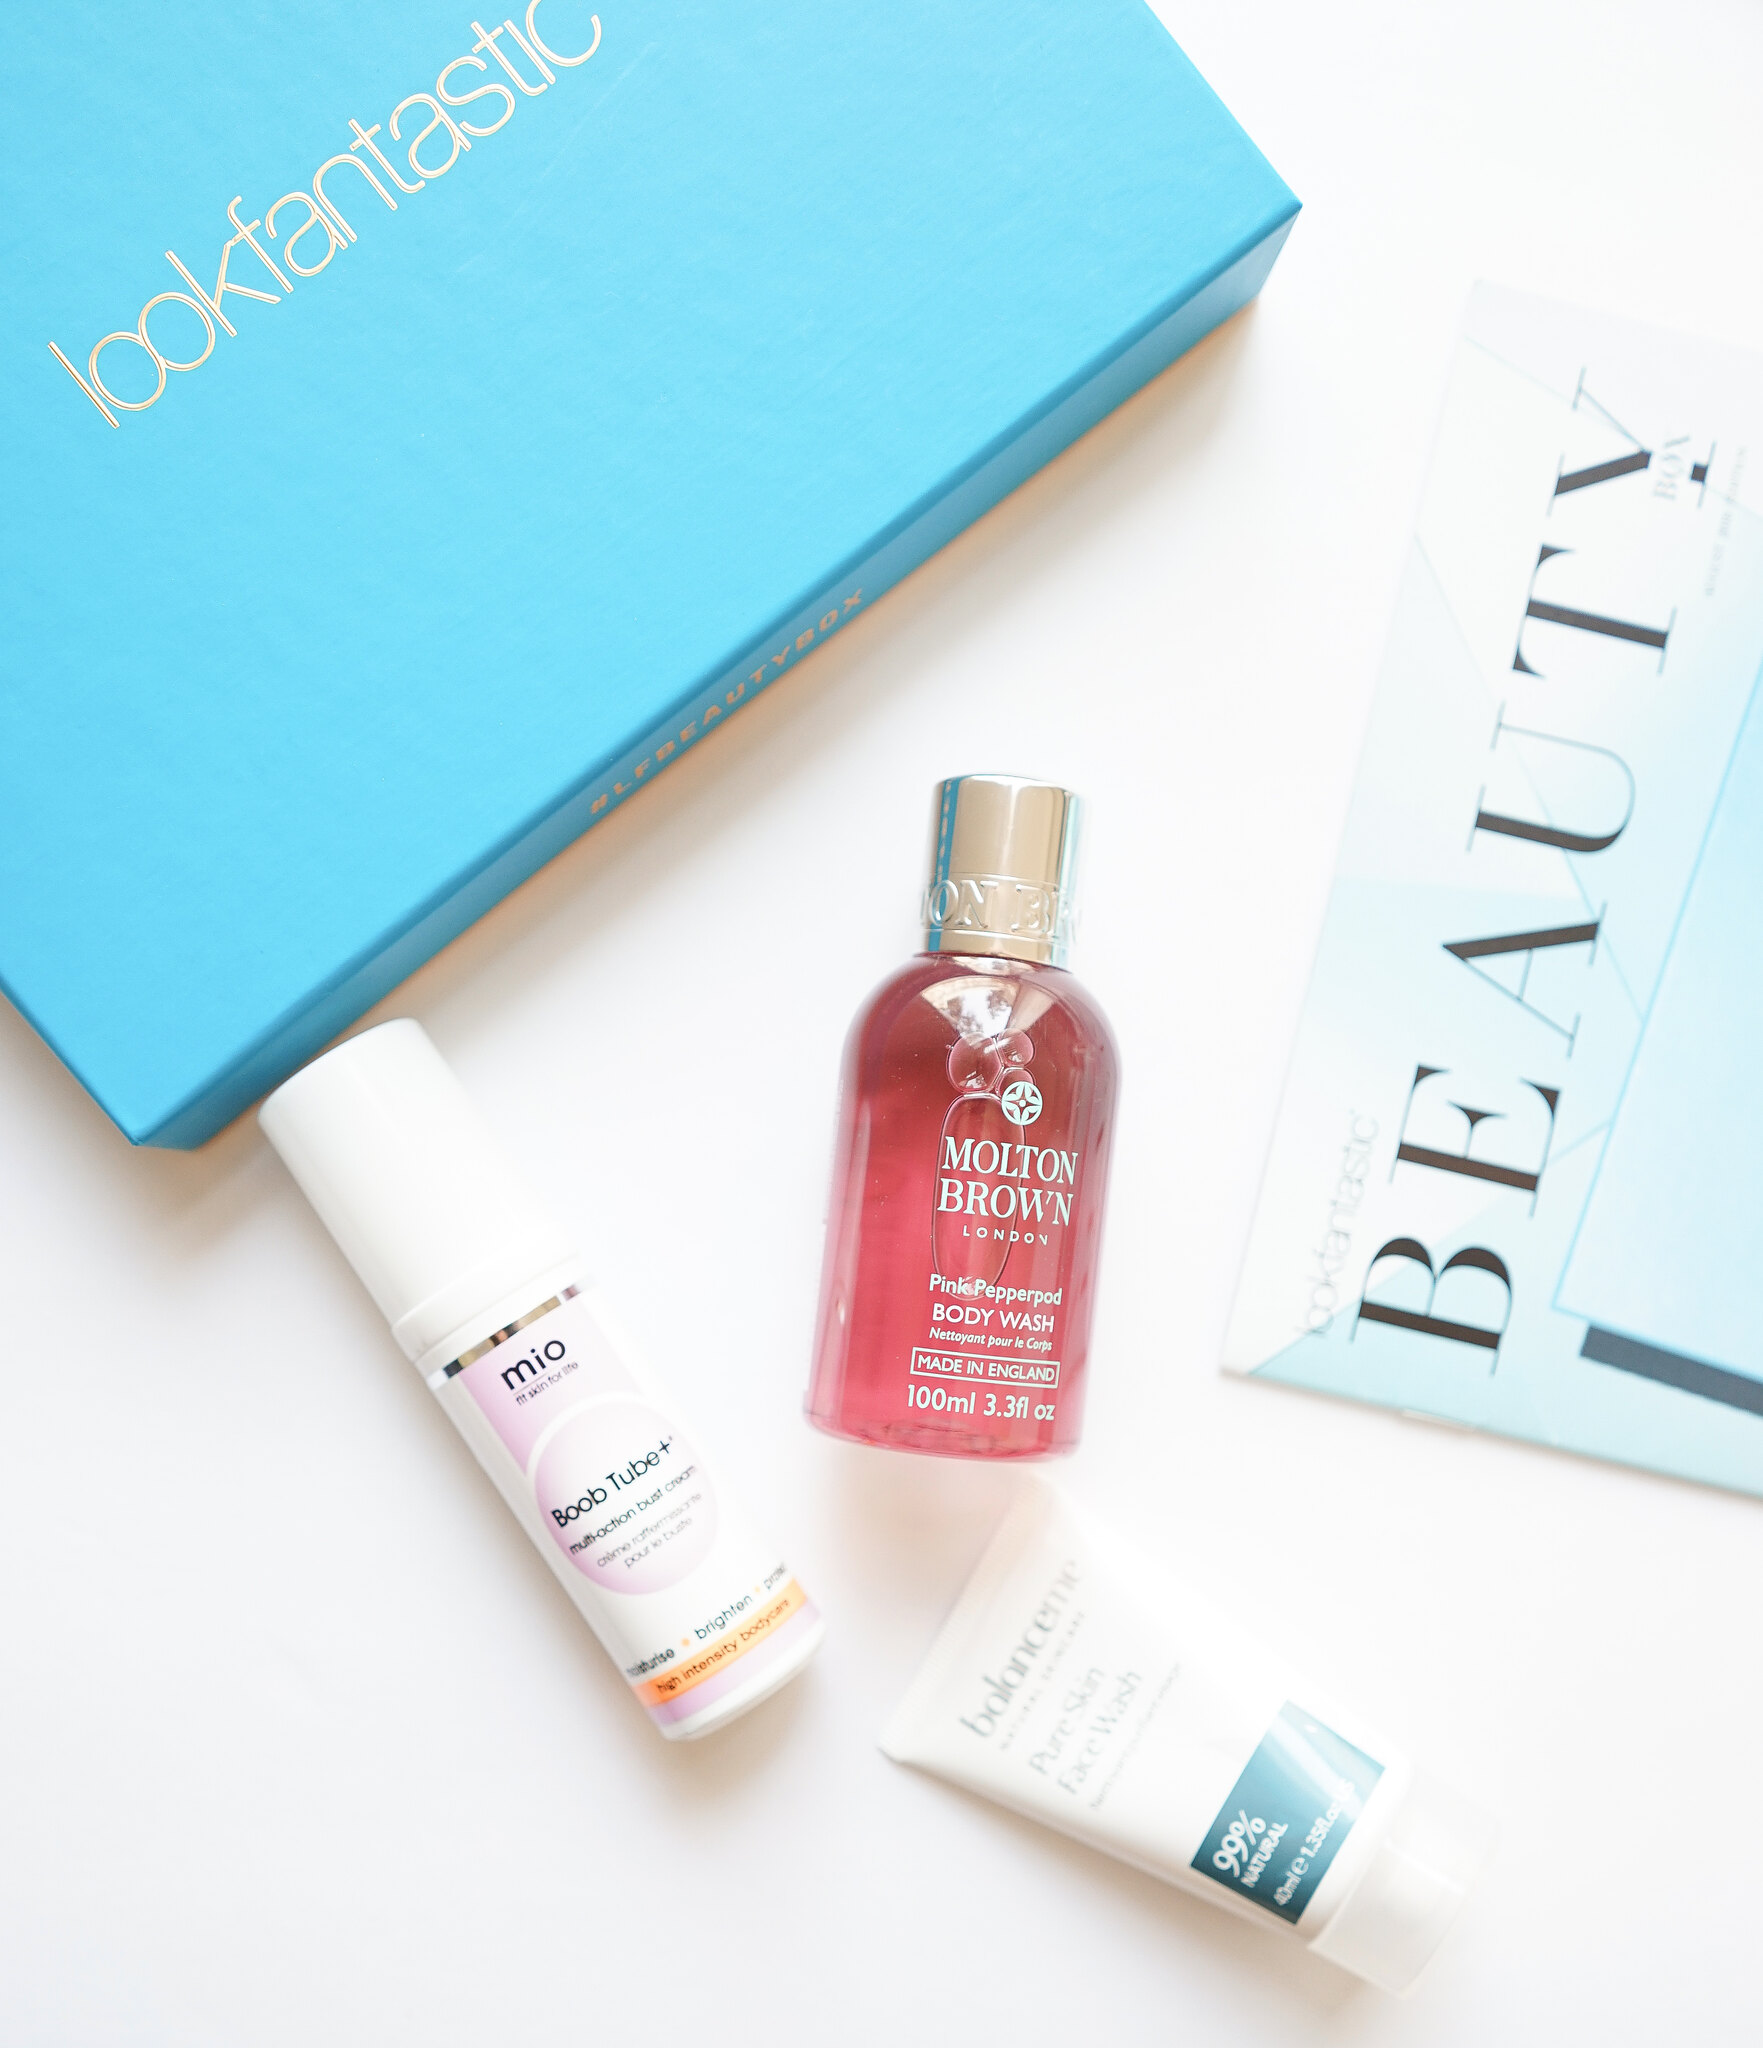 lookfantastic, lfbeautybox, beauty box, beauty blogger, luxury skincare, Molton Brown, Mamma Moo, mom blog, Erno Lazlo, Bblogger, Review